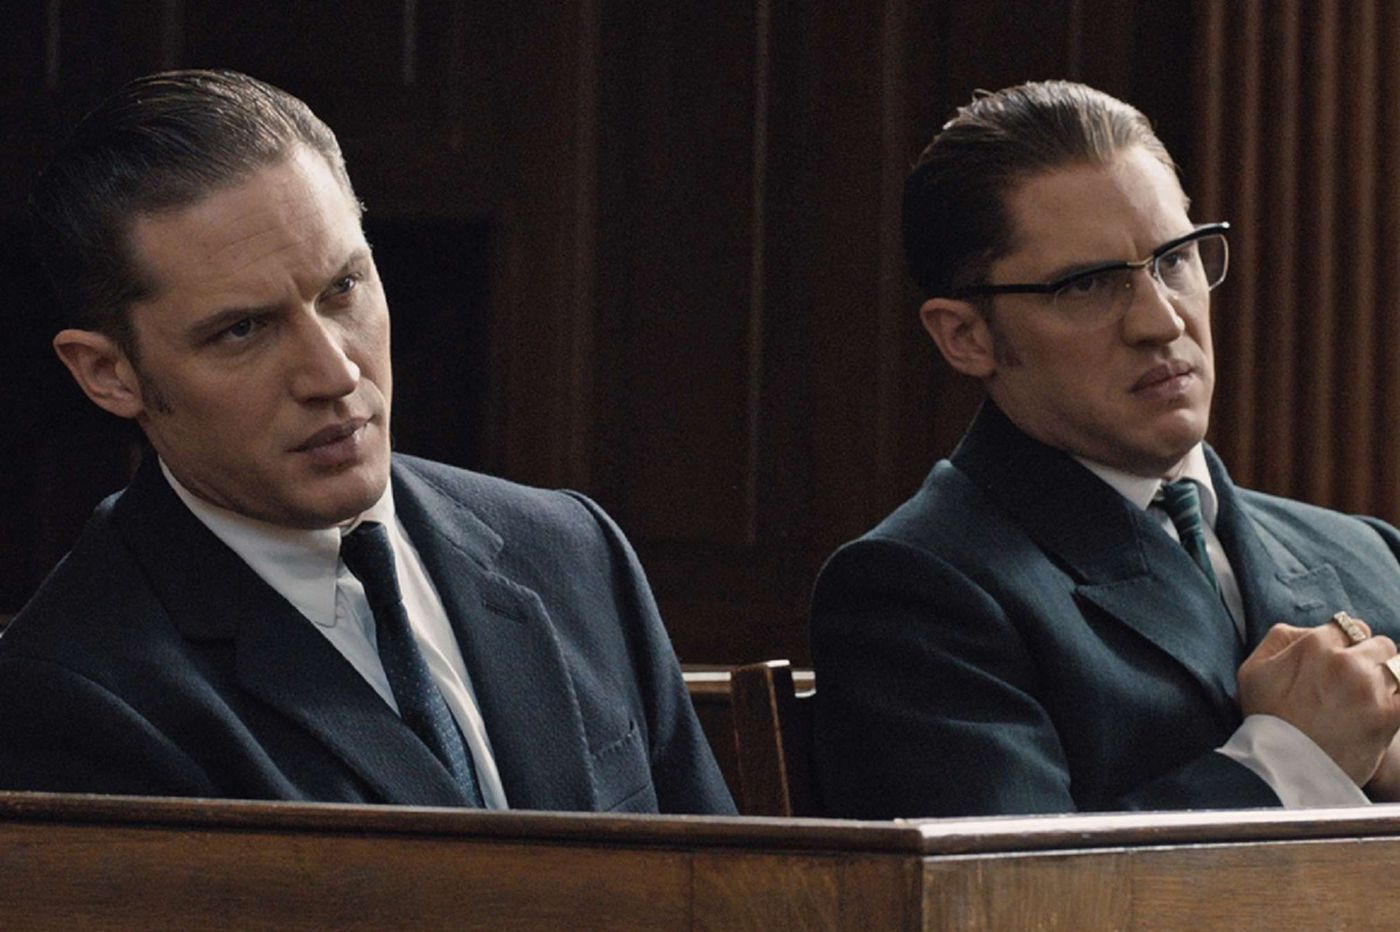 'Legend' wastes a wild Tom Hardy in dual role